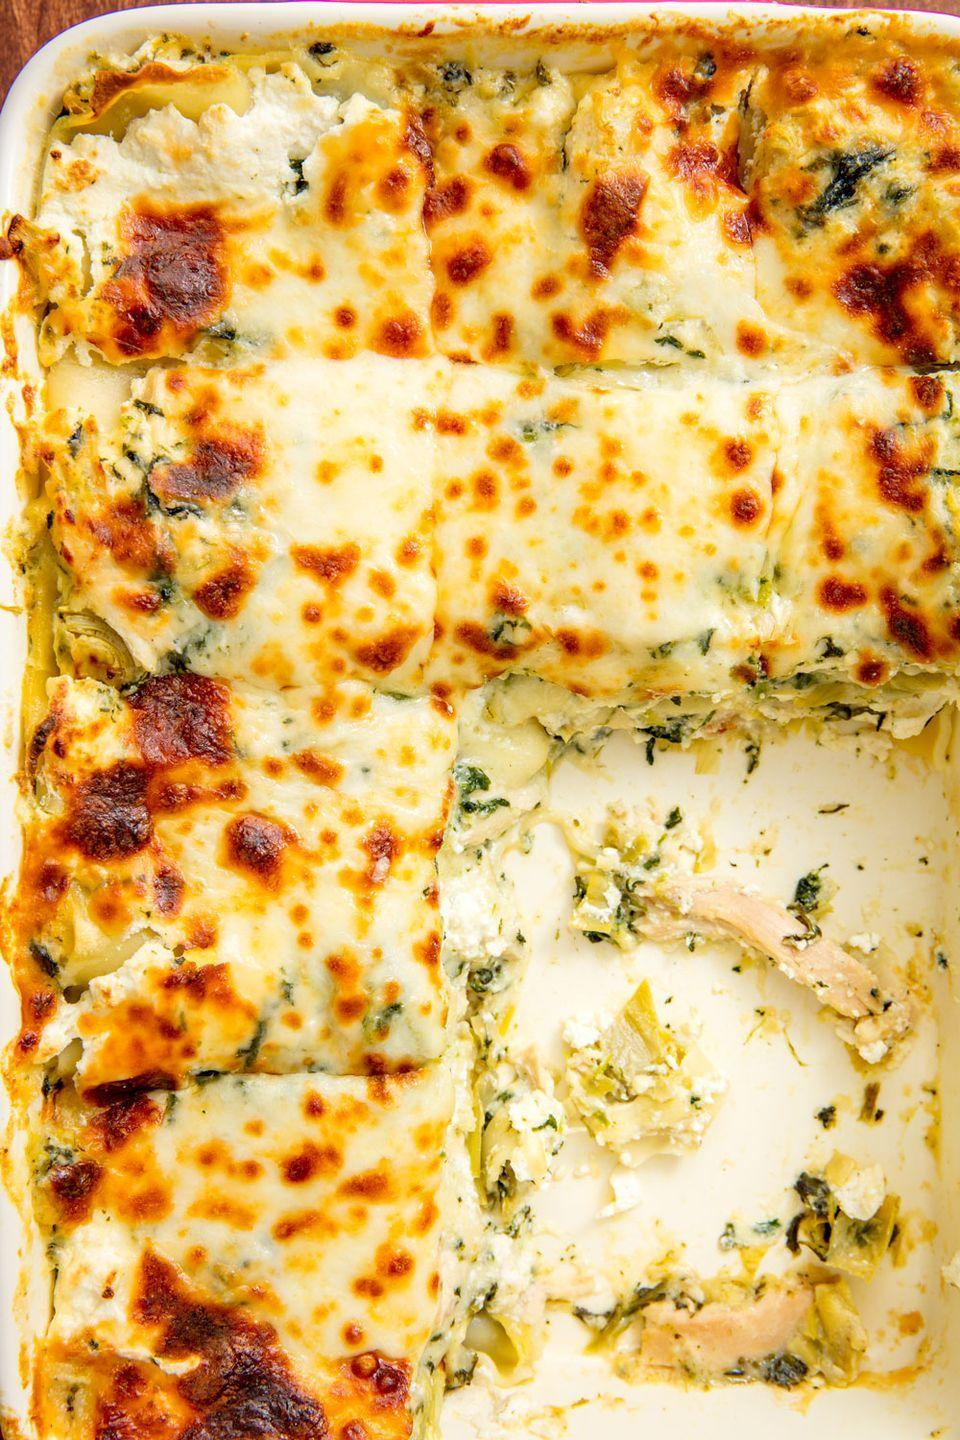 """<p>This thing is RICH.</p><p>Get the recipe from <a href=""""https://www.delish.com/cooking/recipe-ideas/recipes/a45592/cheesy-spinach-and-artichoke-lasagna-recipe/"""" rel=""""nofollow noopener"""" target=""""_blank"""" data-ylk=""""slk:Delish"""" class=""""link rapid-noclick-resp"""">Delish</a>. </p>"""